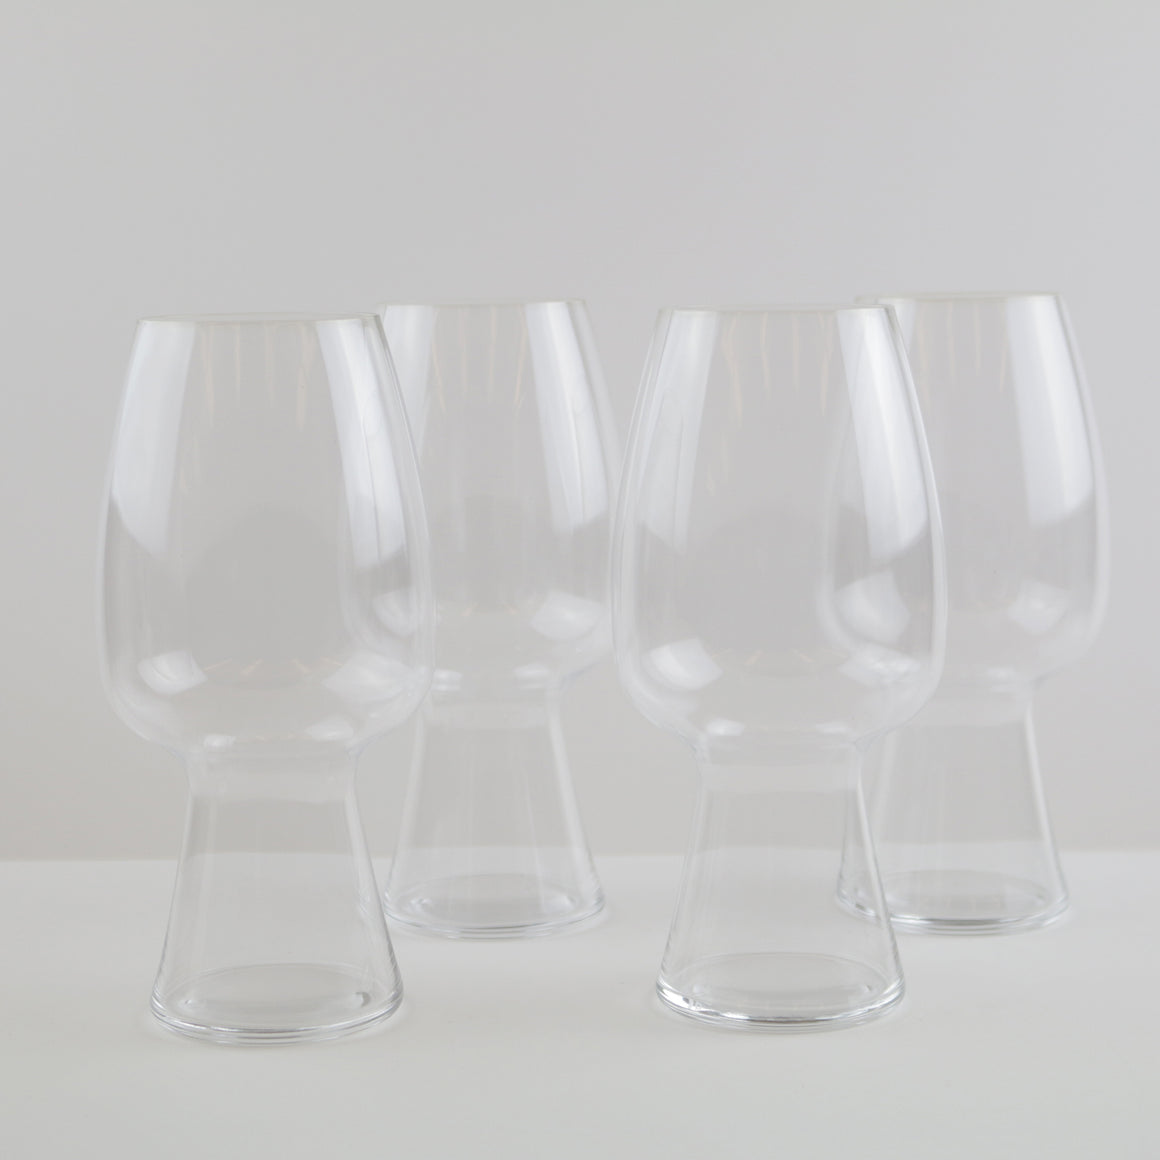 Spiegelau Stout Glass (Set of 4)